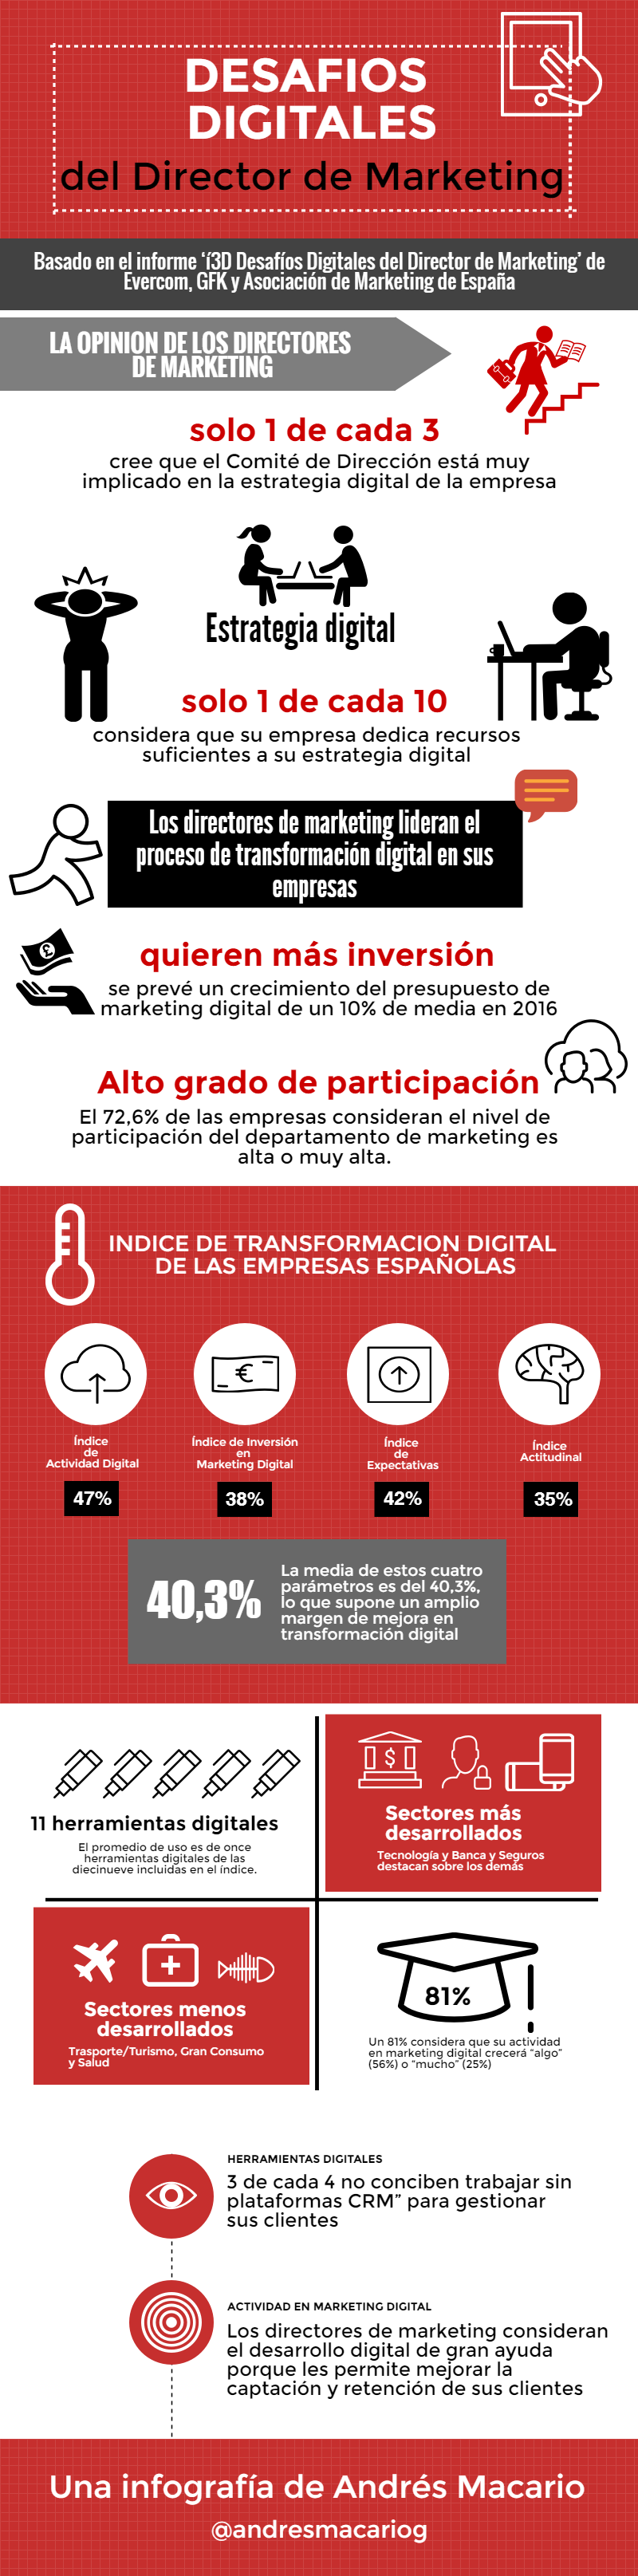 Desafíos digitales del Director de Marketing #infografia #infographic #marketing